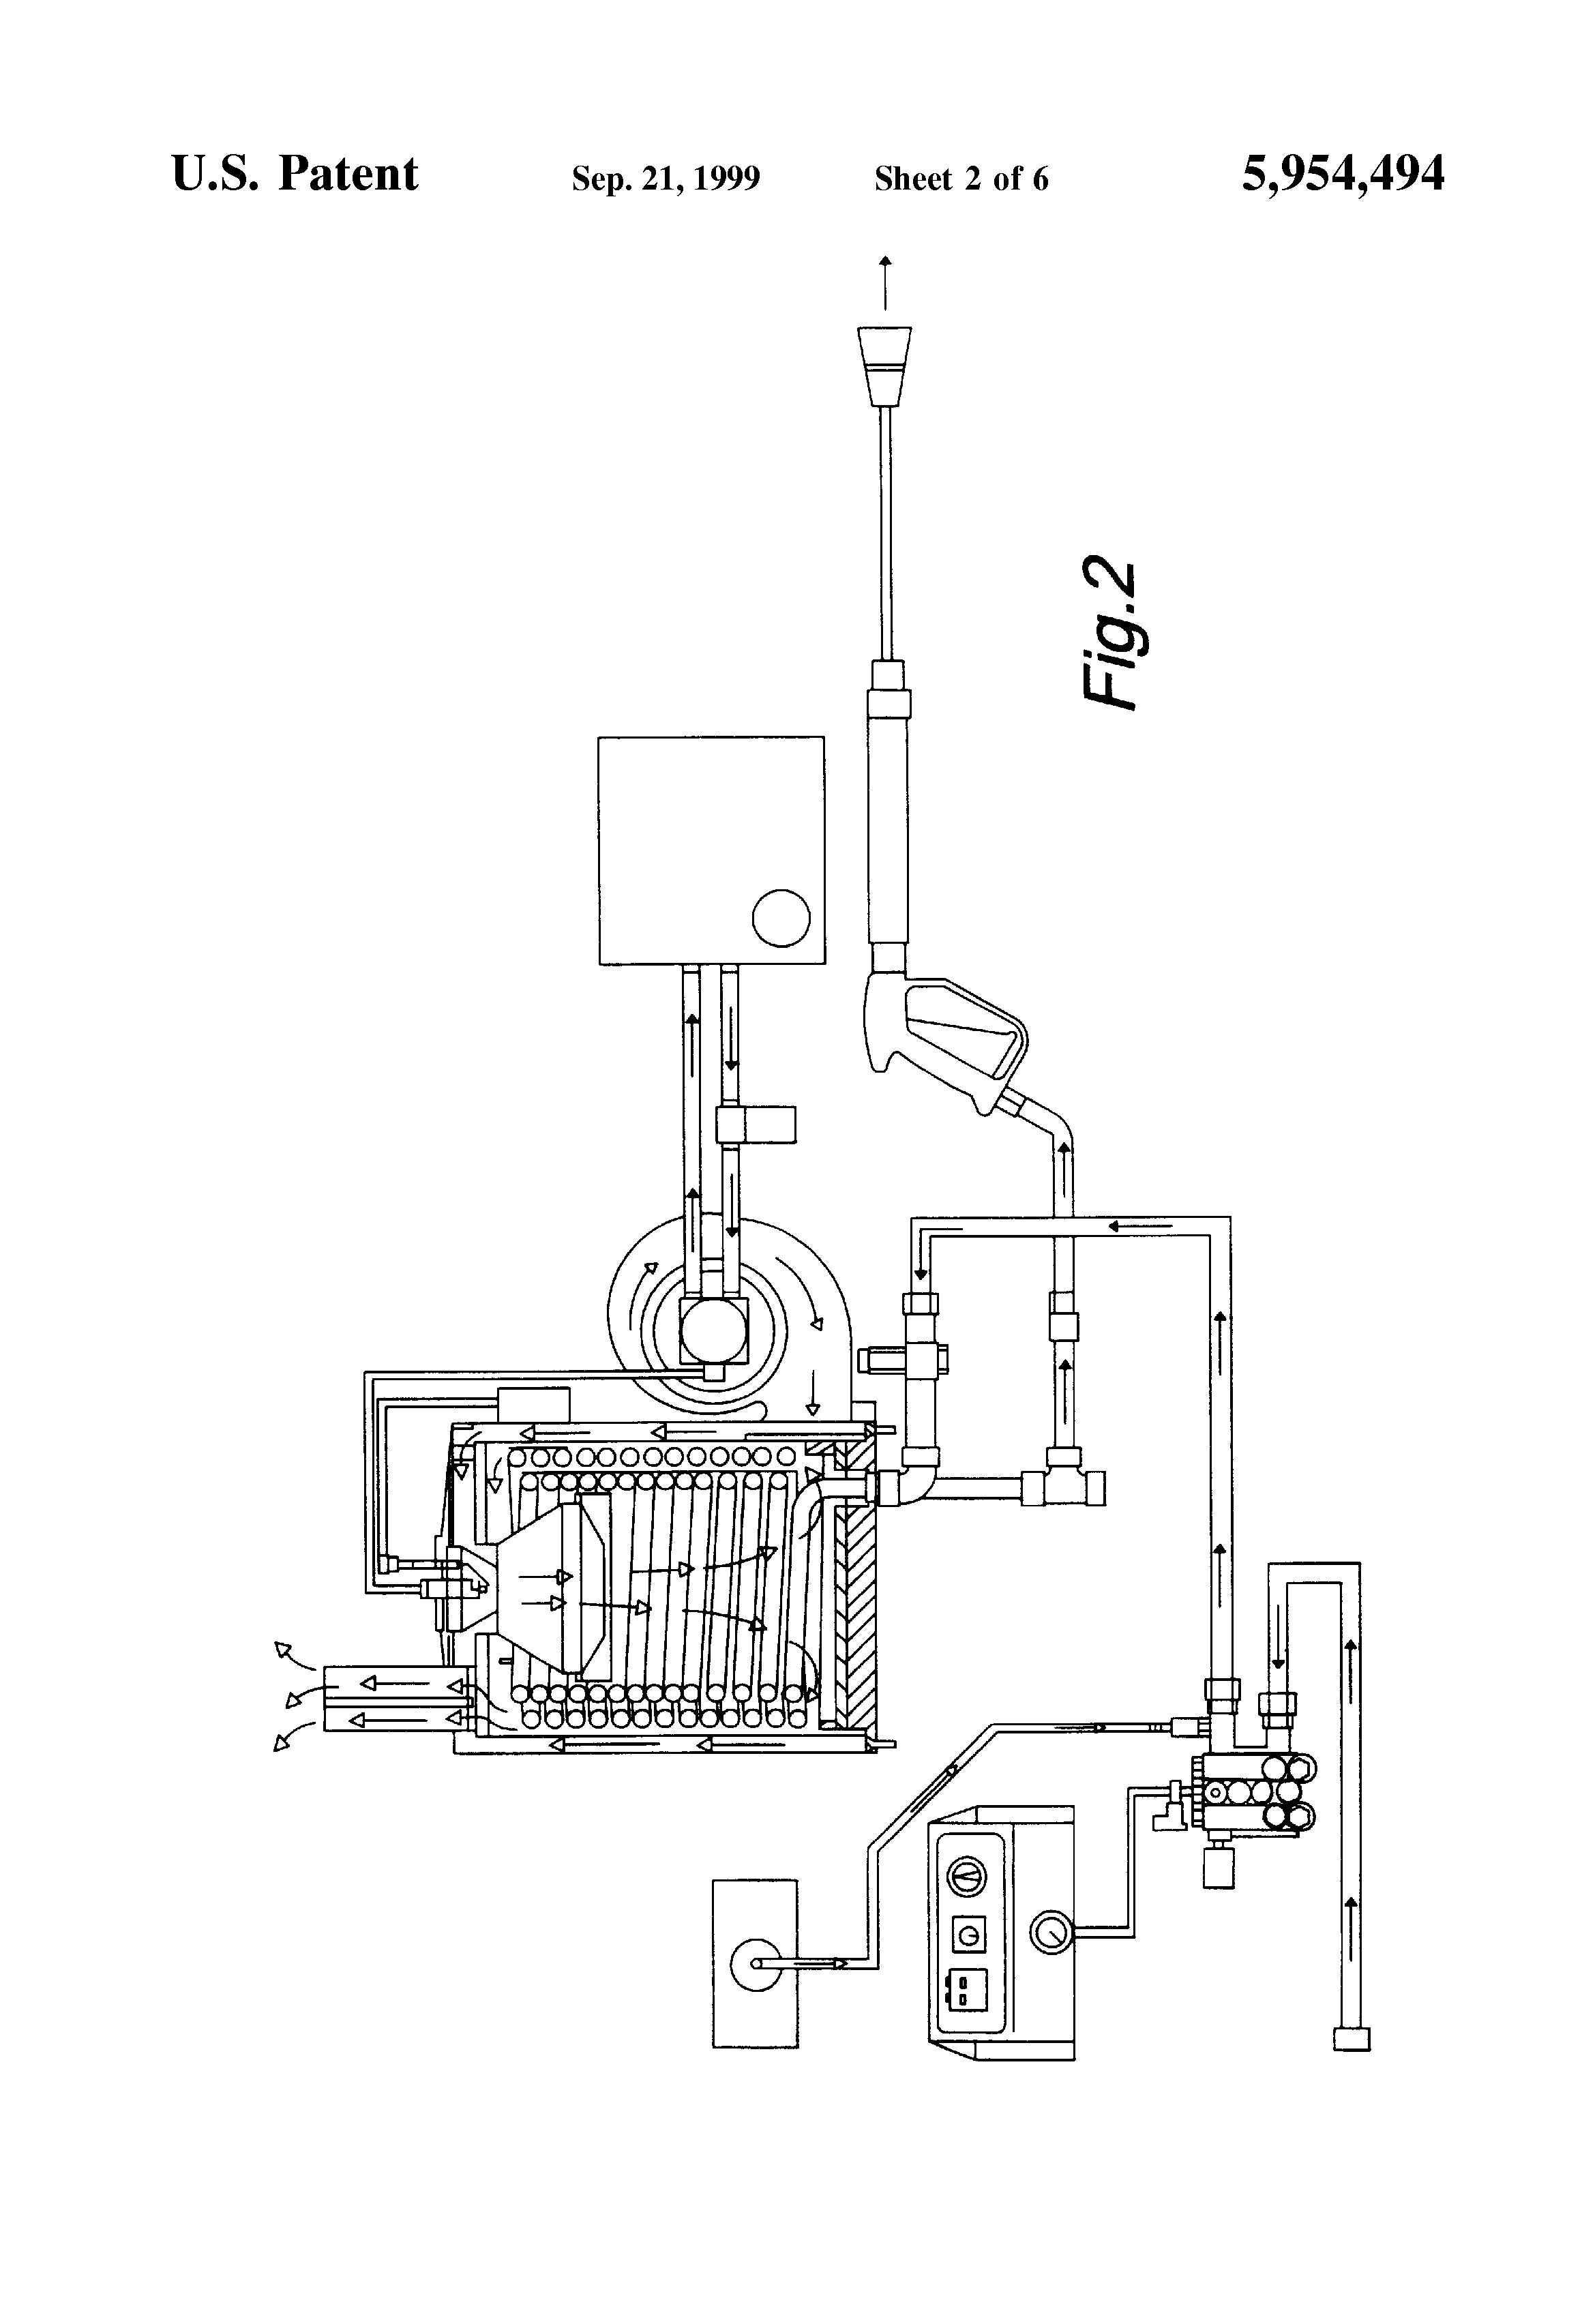 Steam Pressure Washer Wiring Diagram Free For You Craftsman Alkota Data Rh 19 9 Reisen Fuer Meister De Electric Burner